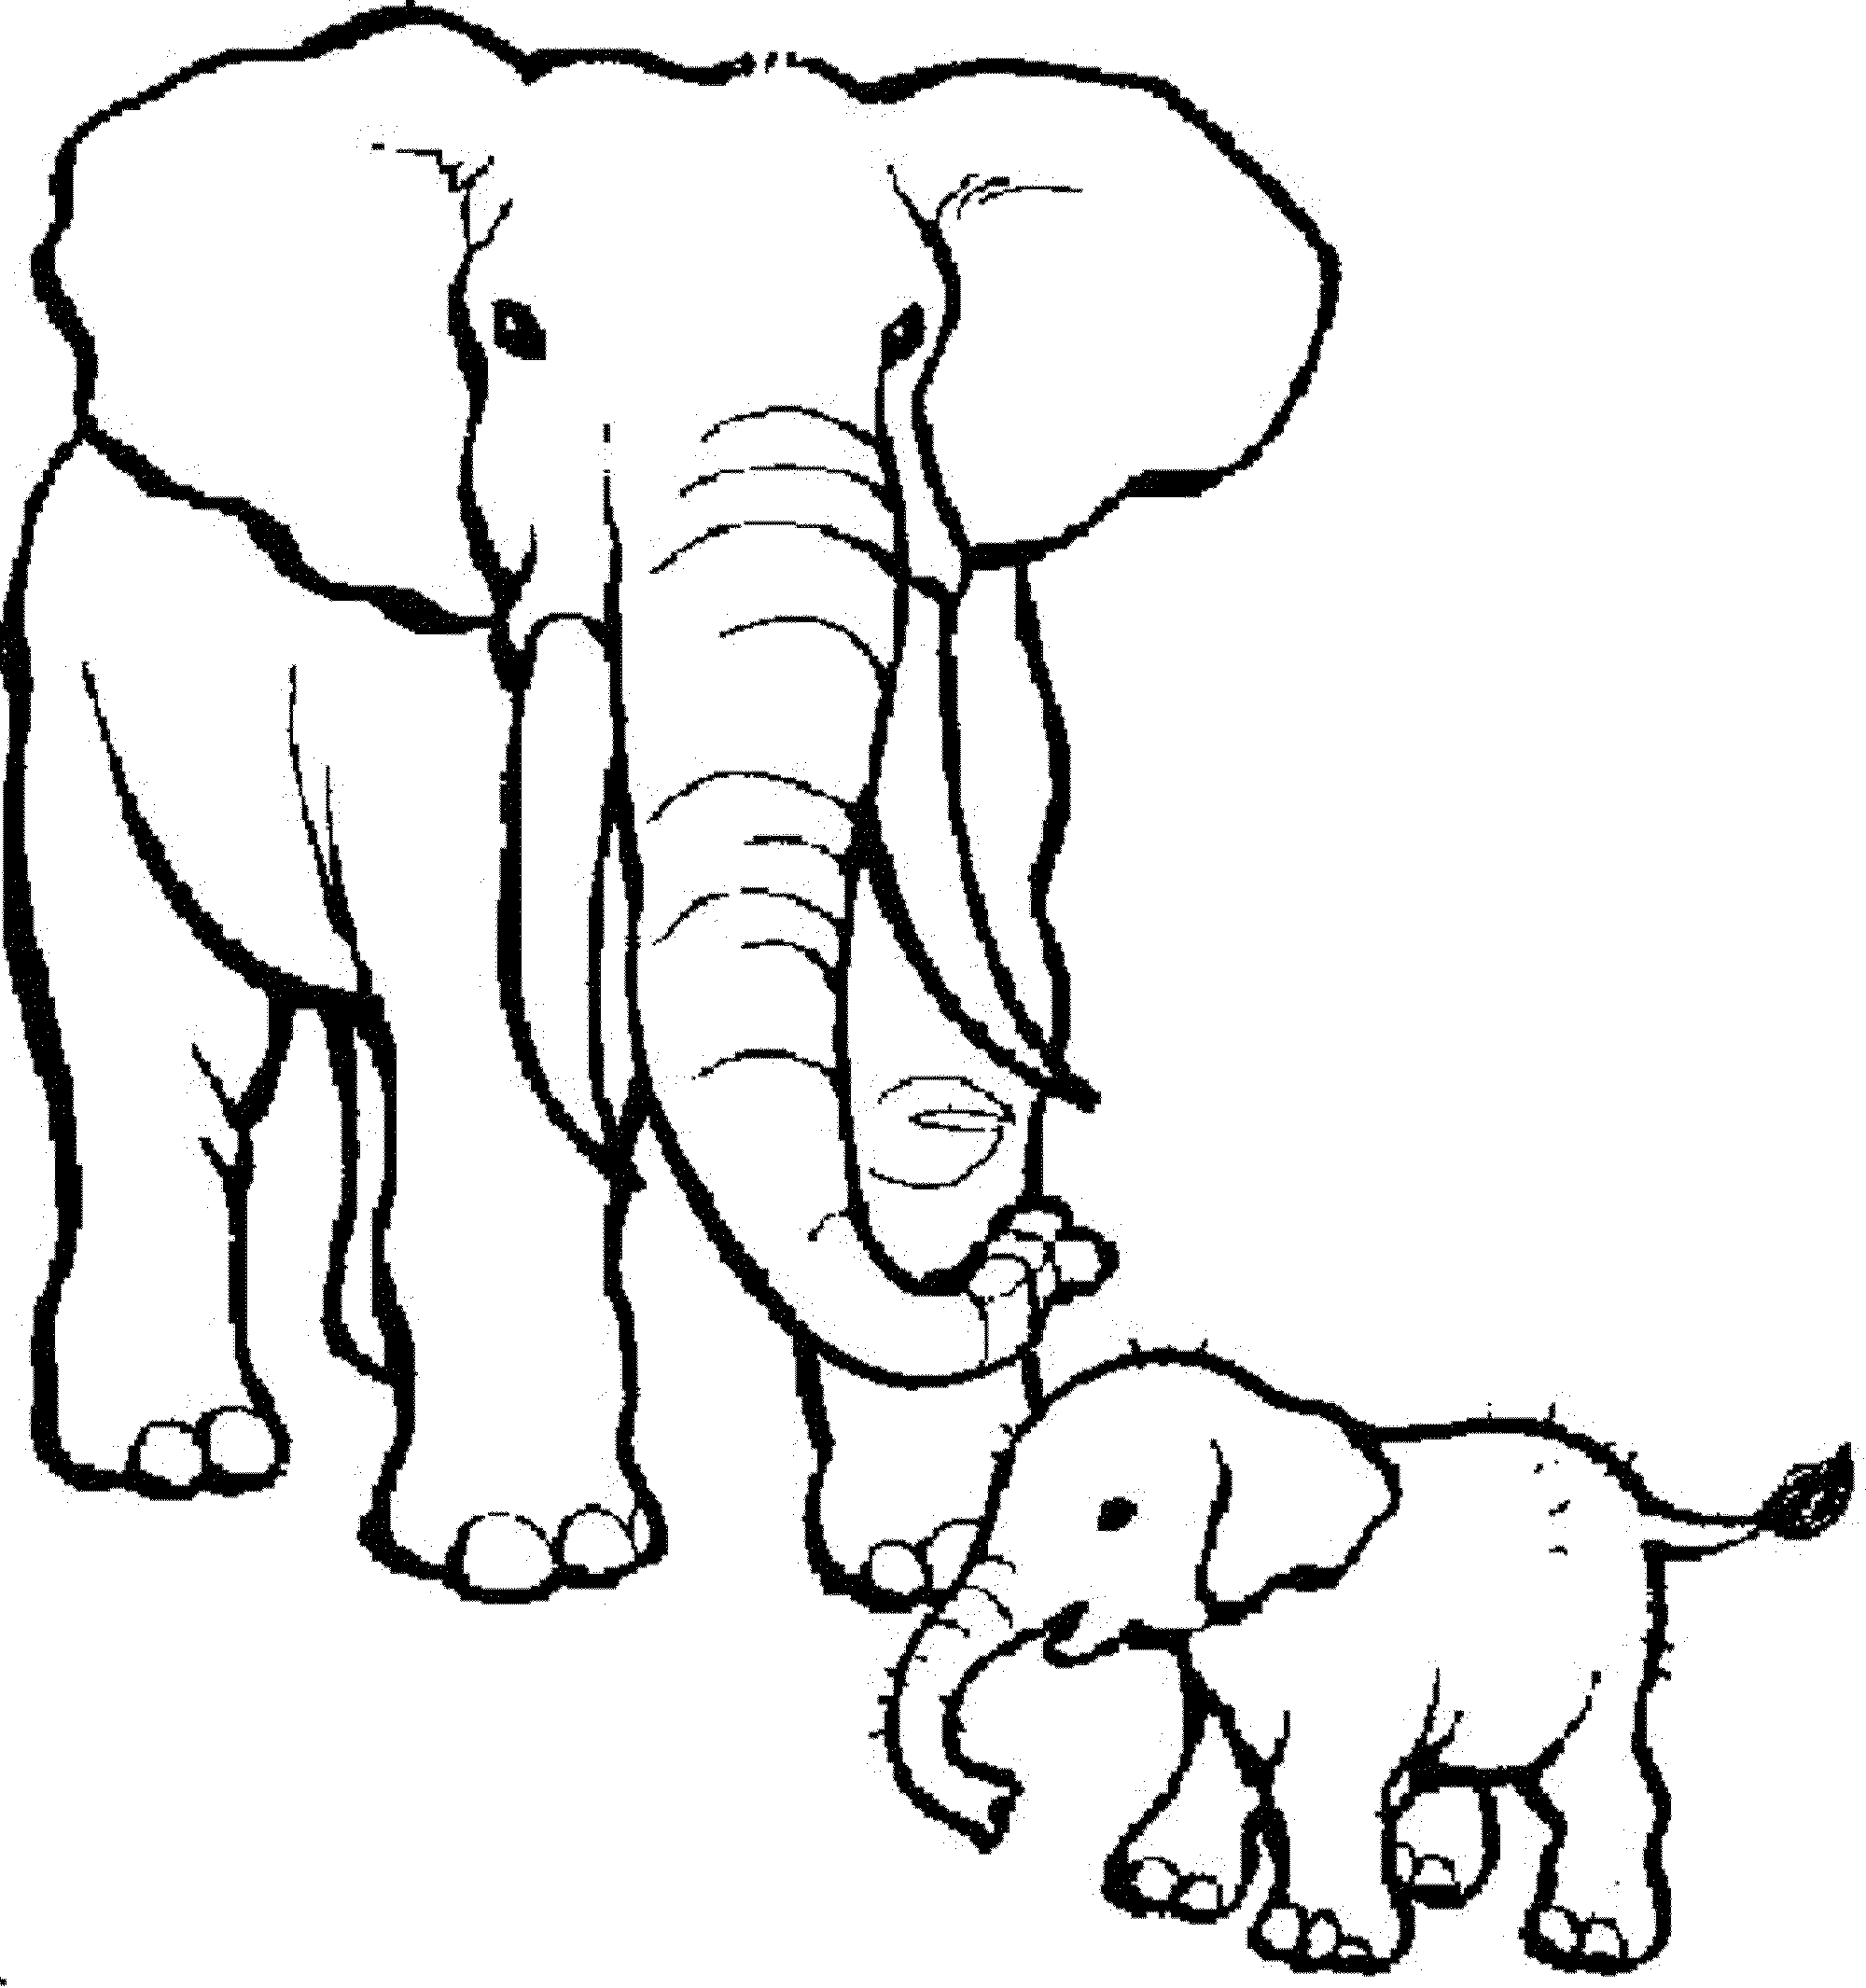 2000x2131 Mom And Baby Elephant Coloring Page Mom And Baby Elephant Coloring Elephant Coloring Page Zoo Animal Coloring Pages Animal Coloring Pages